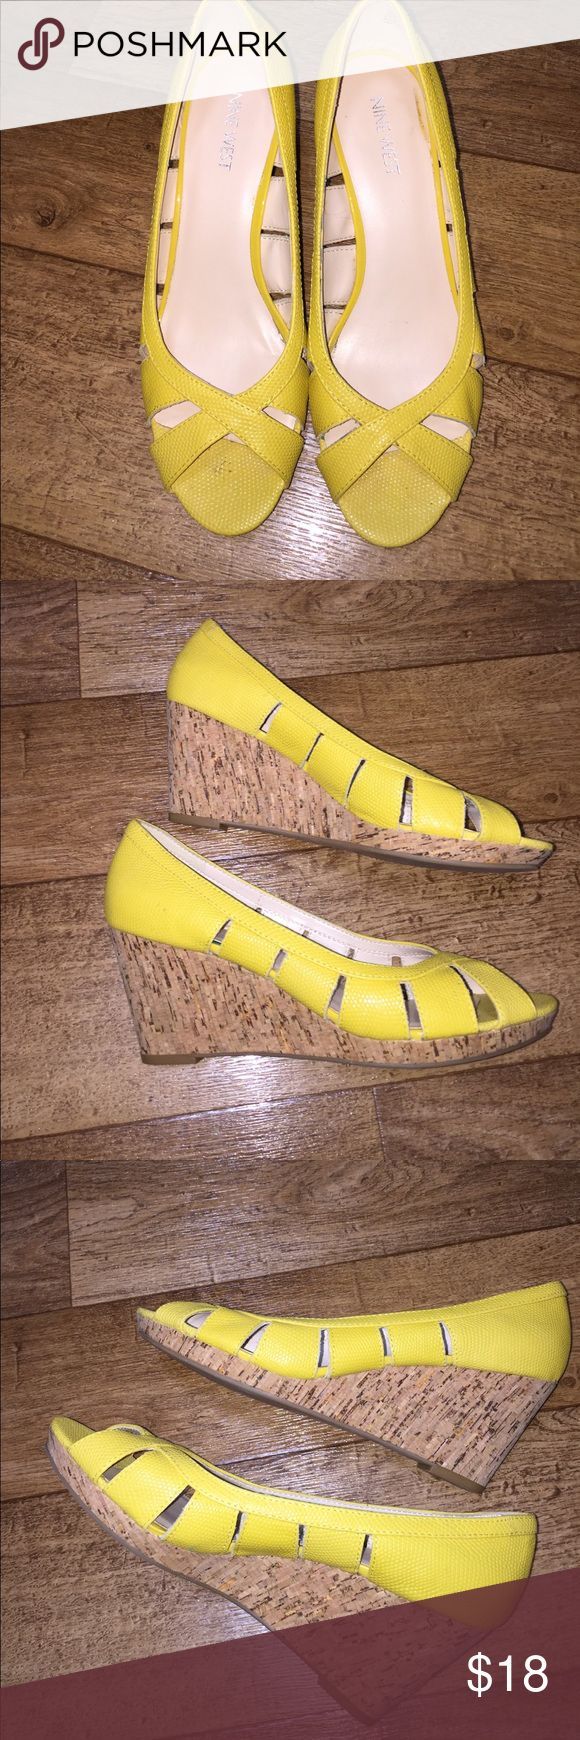 Nine West Yellow Wedges Adorable open-toed yellow wedges. Nine West Shoes Wedges